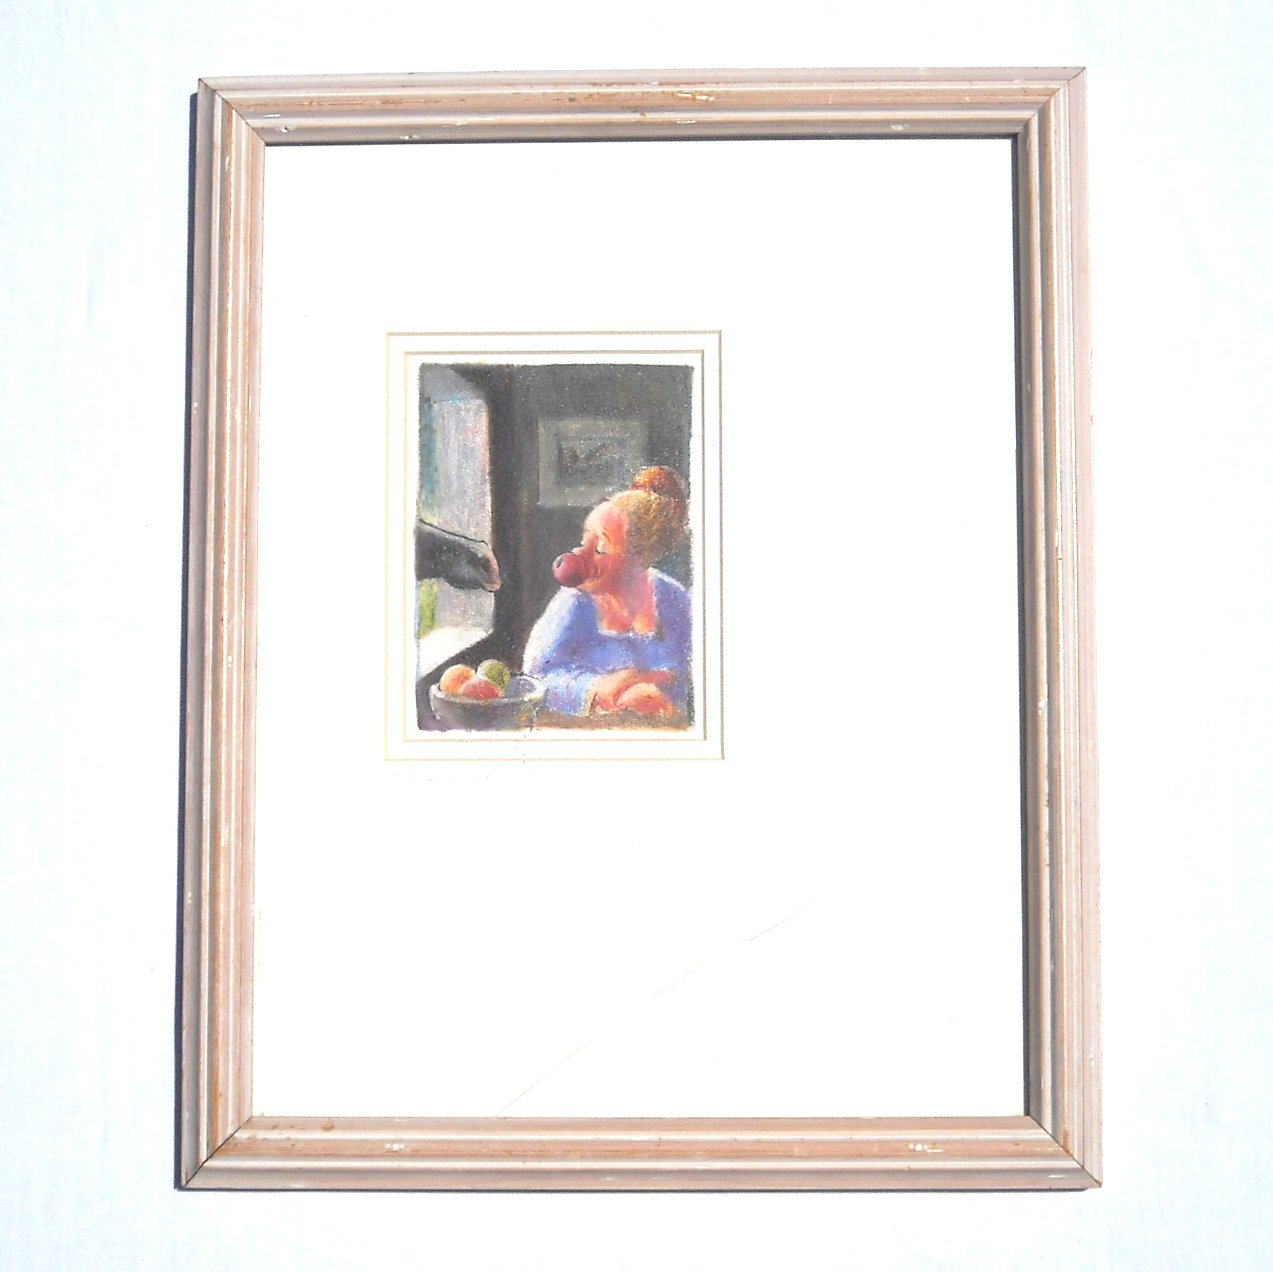 The Come On Jeff Leedy Signed Framed